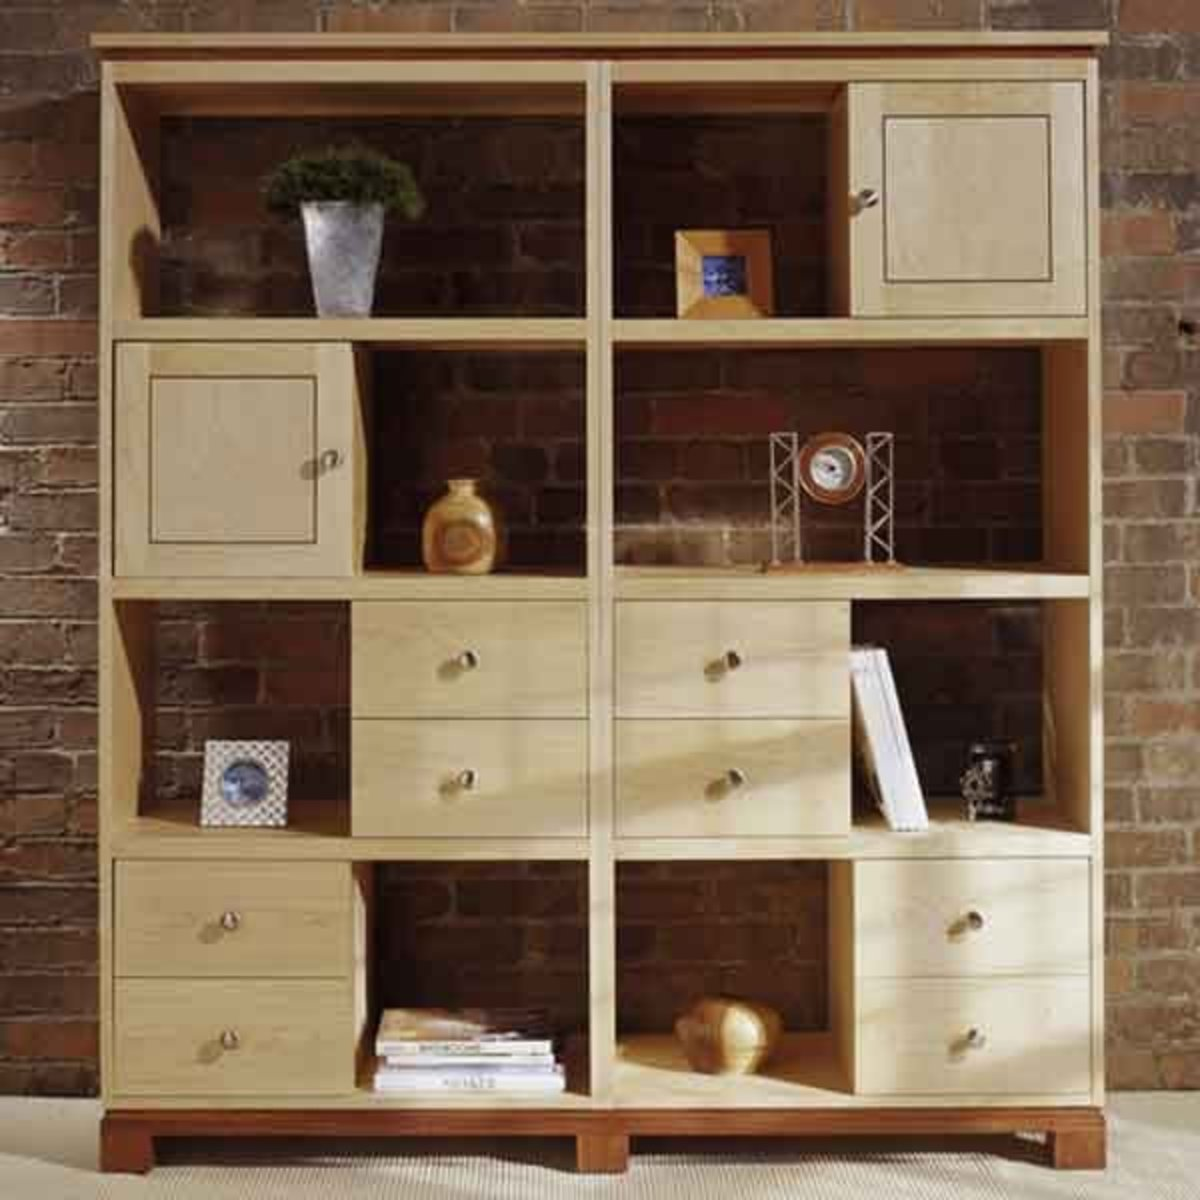 Knockdown Kitchen Cabinets: Woodworking Project Paper Plan To Build Knockdown Modular